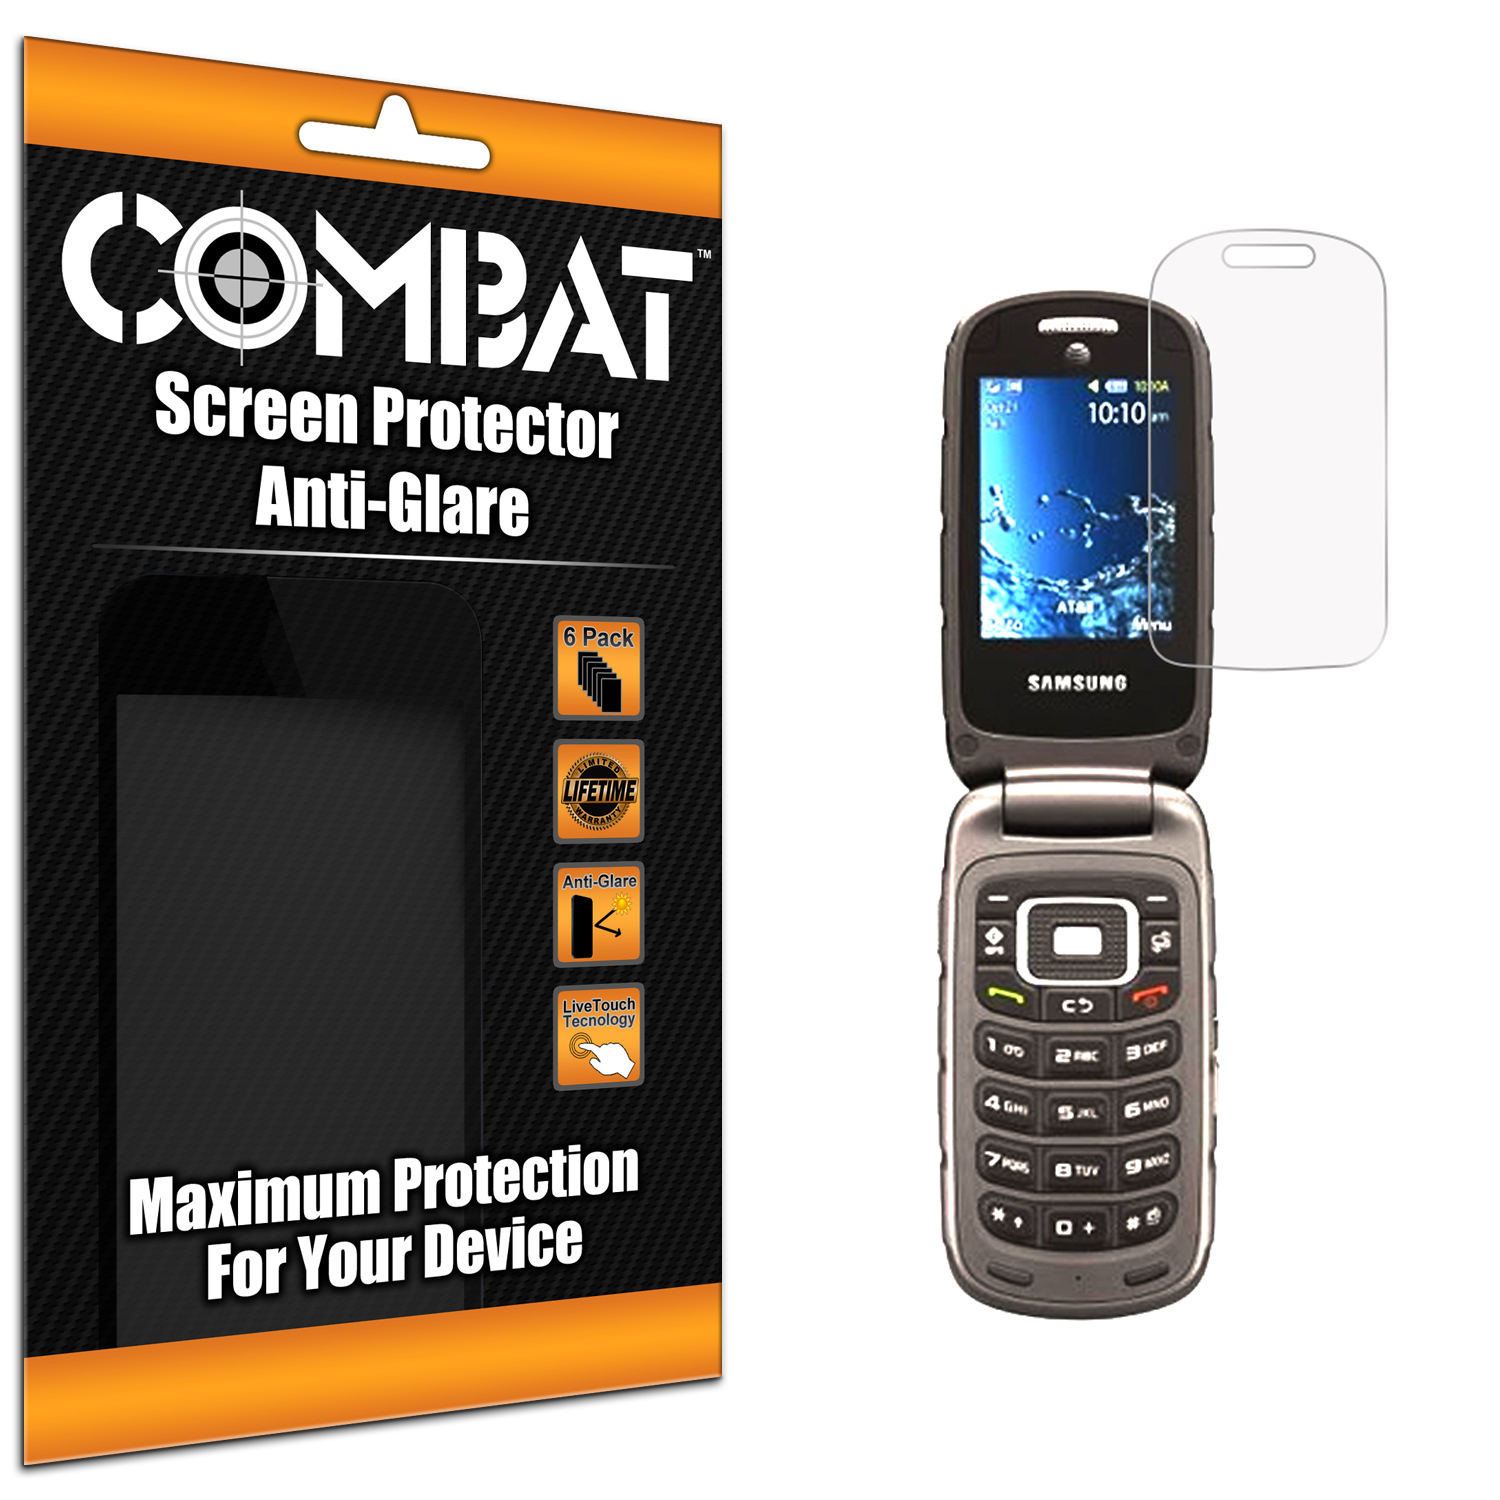 Samsung Rugby 4 Anti Glare Combat 6 Pack Anti-Glare Matte Screen Protector